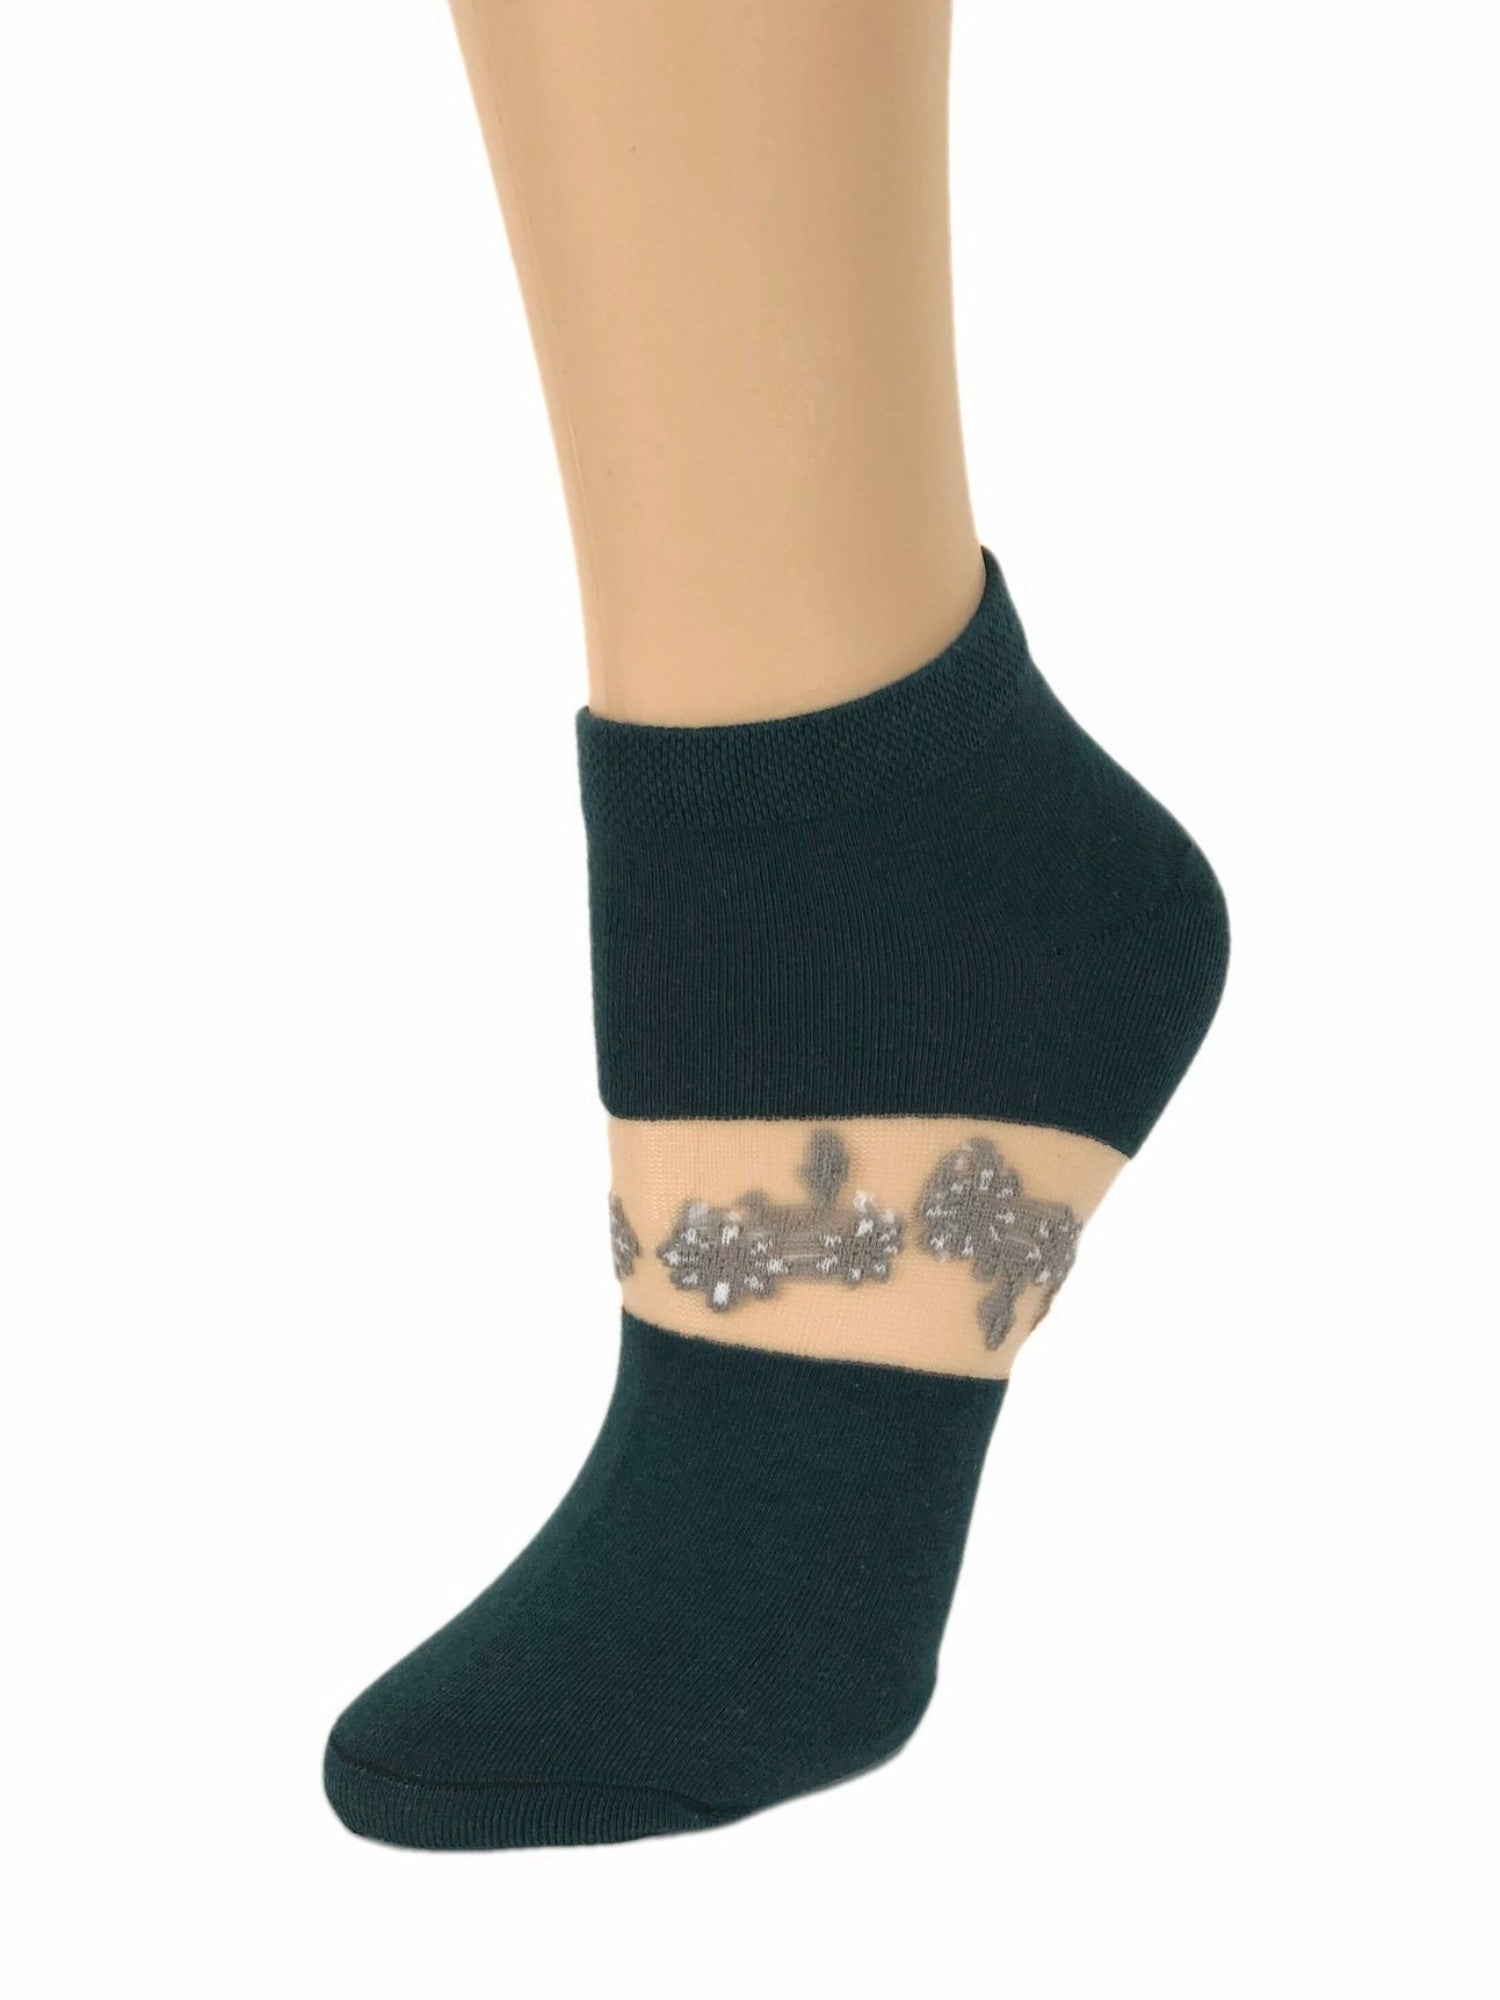 One-Stripped Grey Flower Ankle Sheer Socks - Global Trendz Fashion®